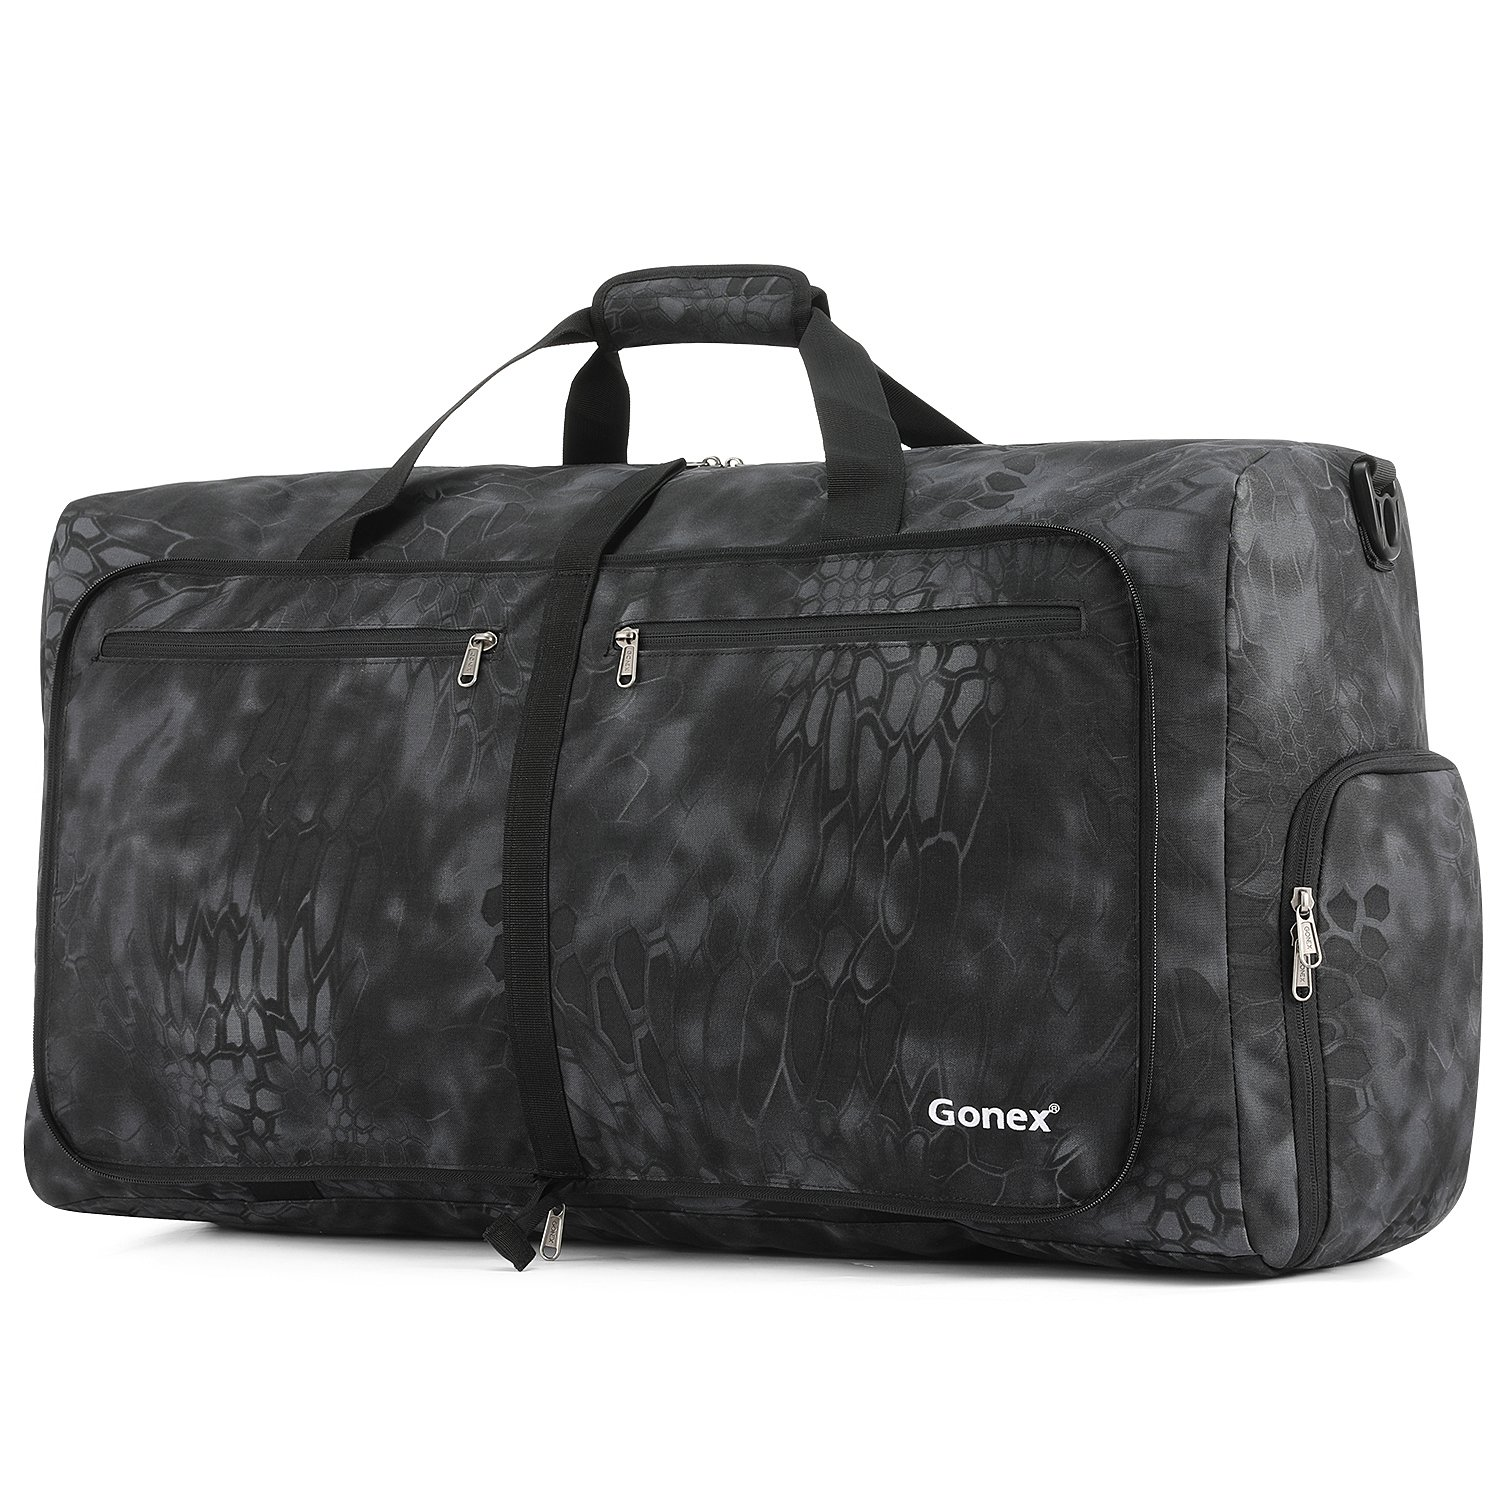 Gonex Cordura Duffle Bag, Packable Travel Duffel Water Resistant, 60L(Typhon) by Gonex